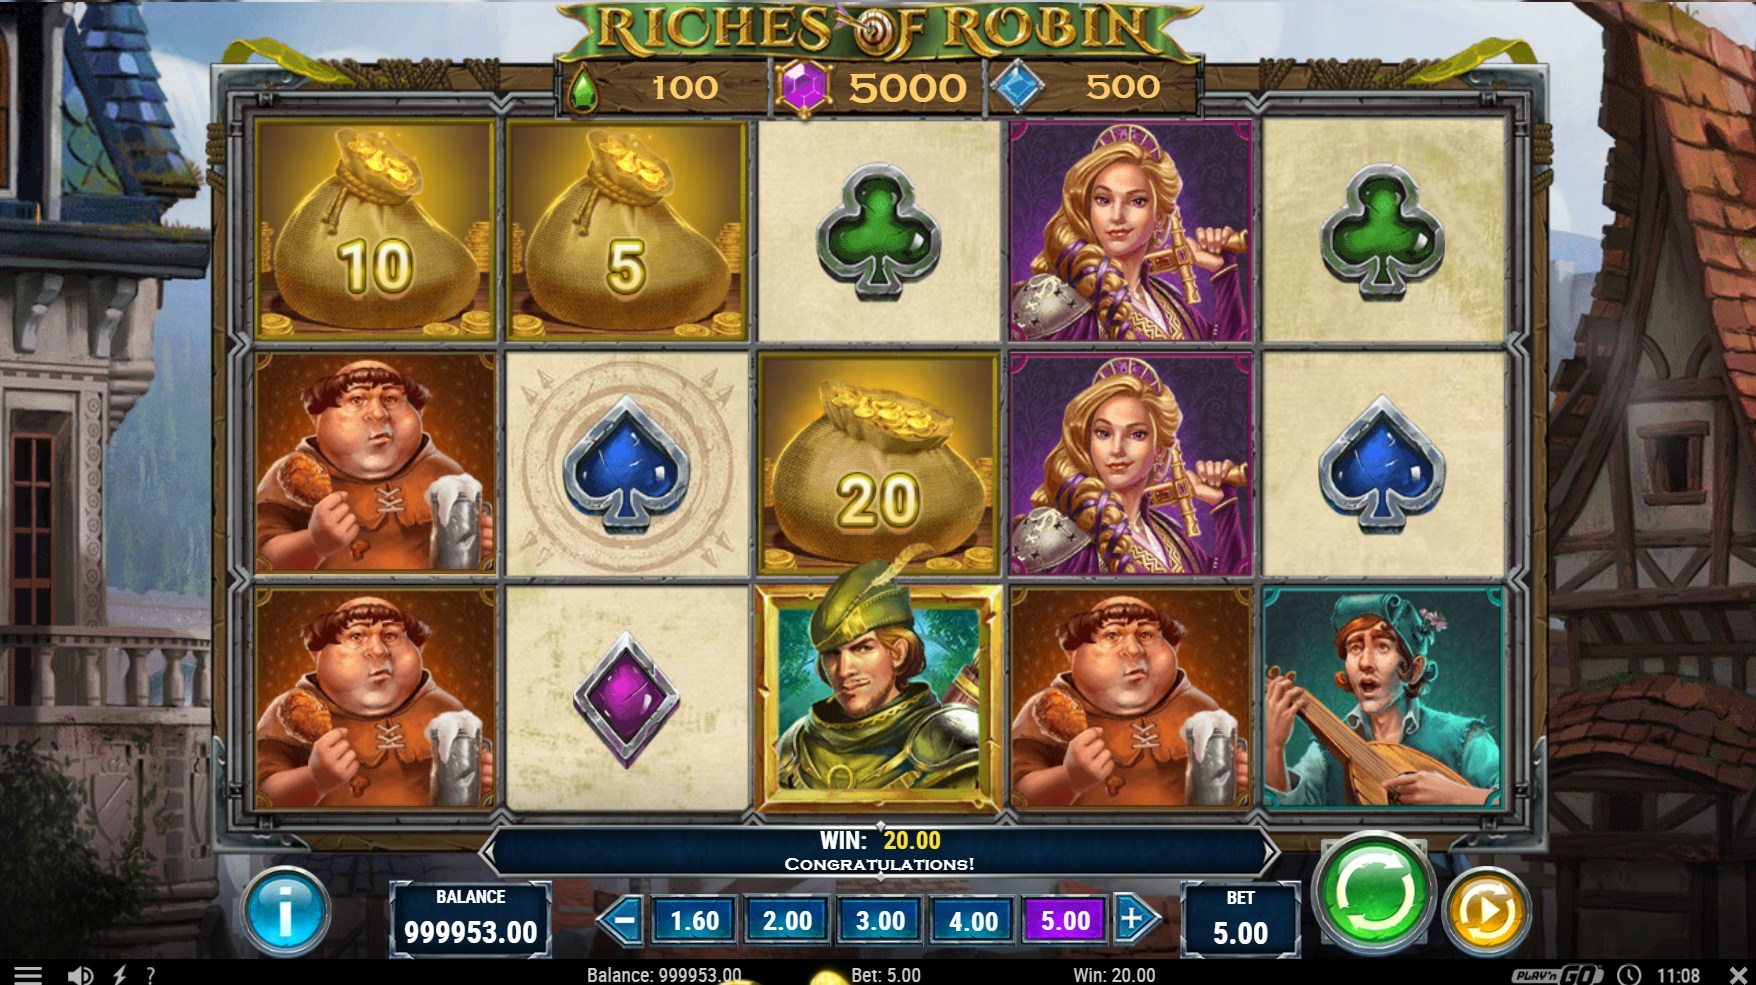 Riches of Robin Slot Gameplay